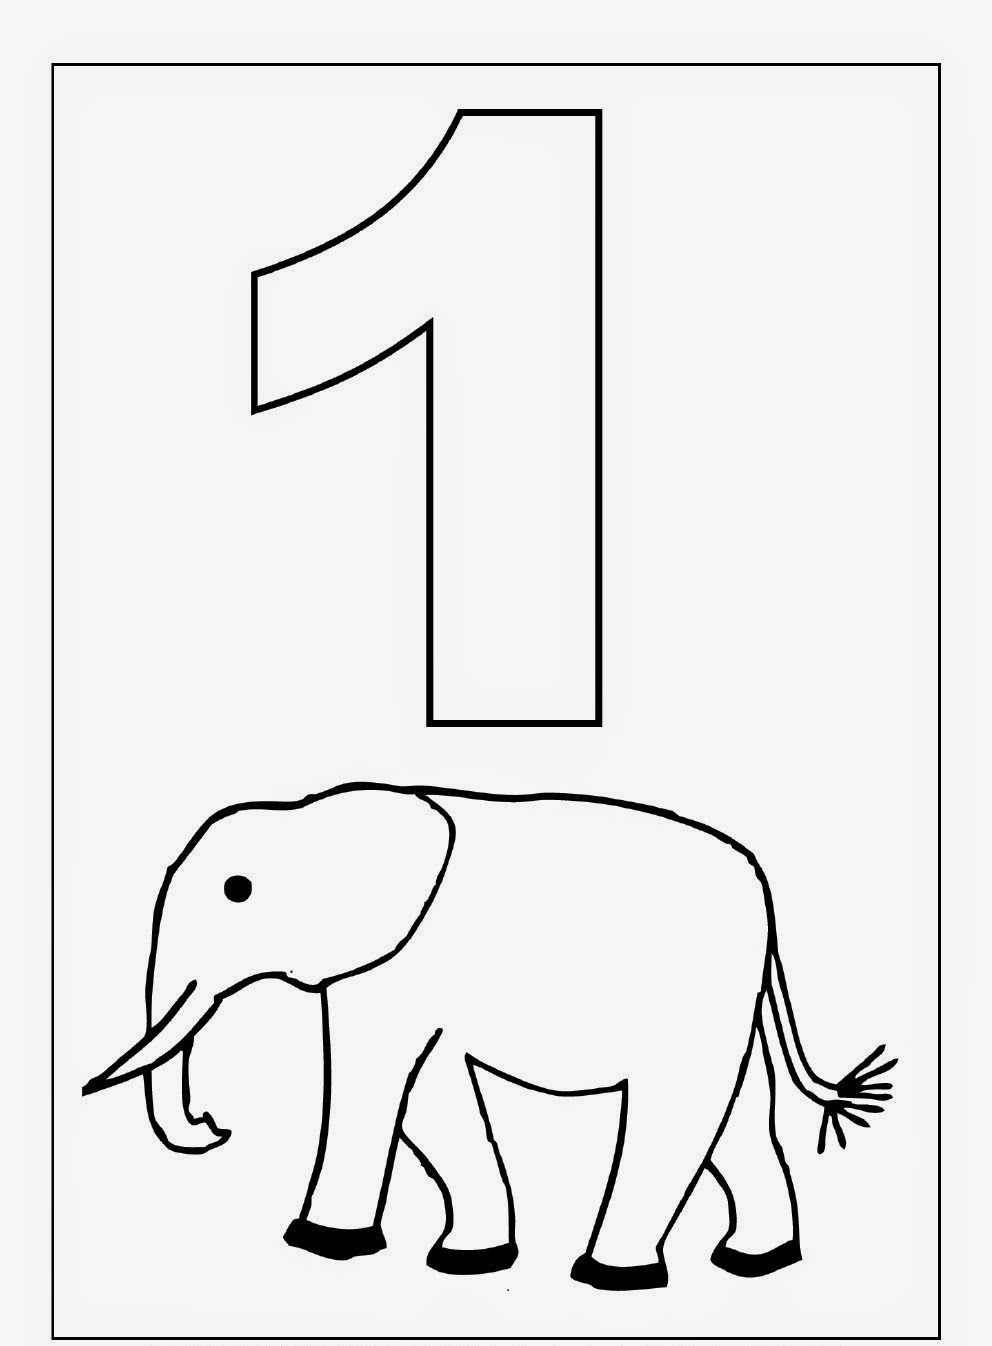 Kindergarten Worksheets: Coloring Worksheets - Maths 13-130